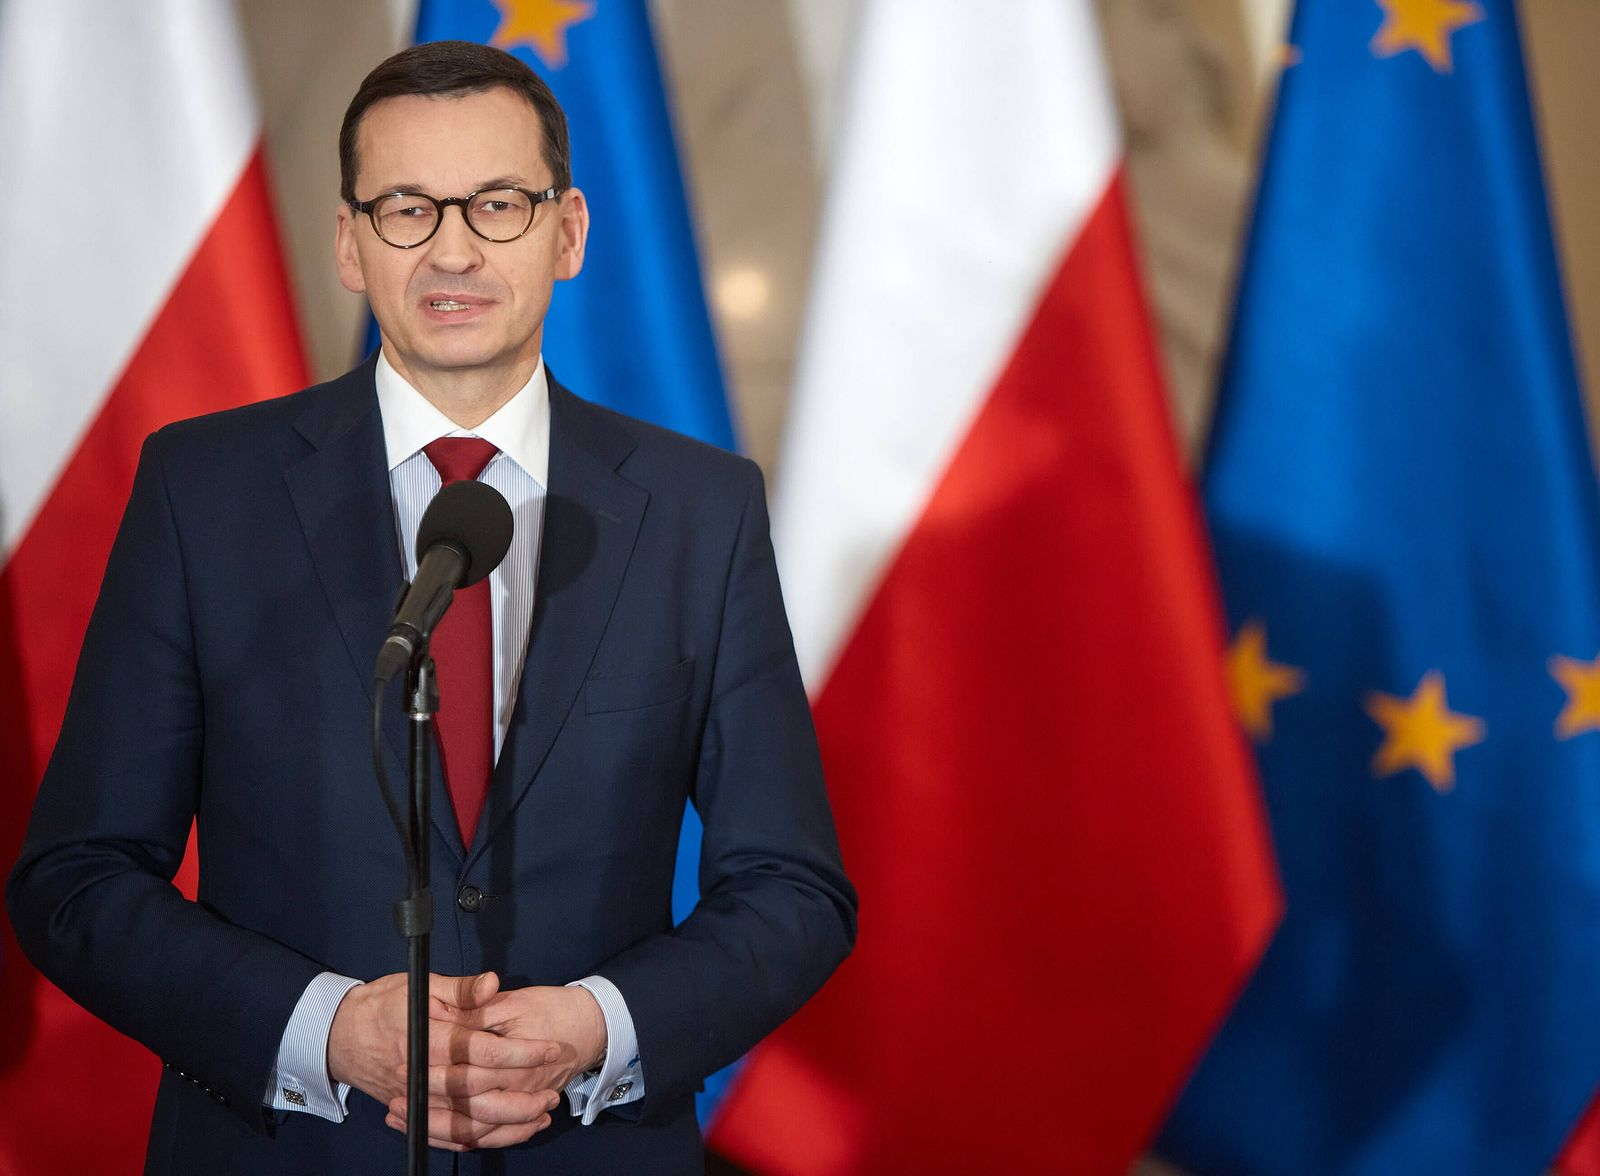 January 10, 2020: Polish Prime Minister MATEUSZ MORAWIECKI During The Ceremony of Handing Over Appointments To Two New V